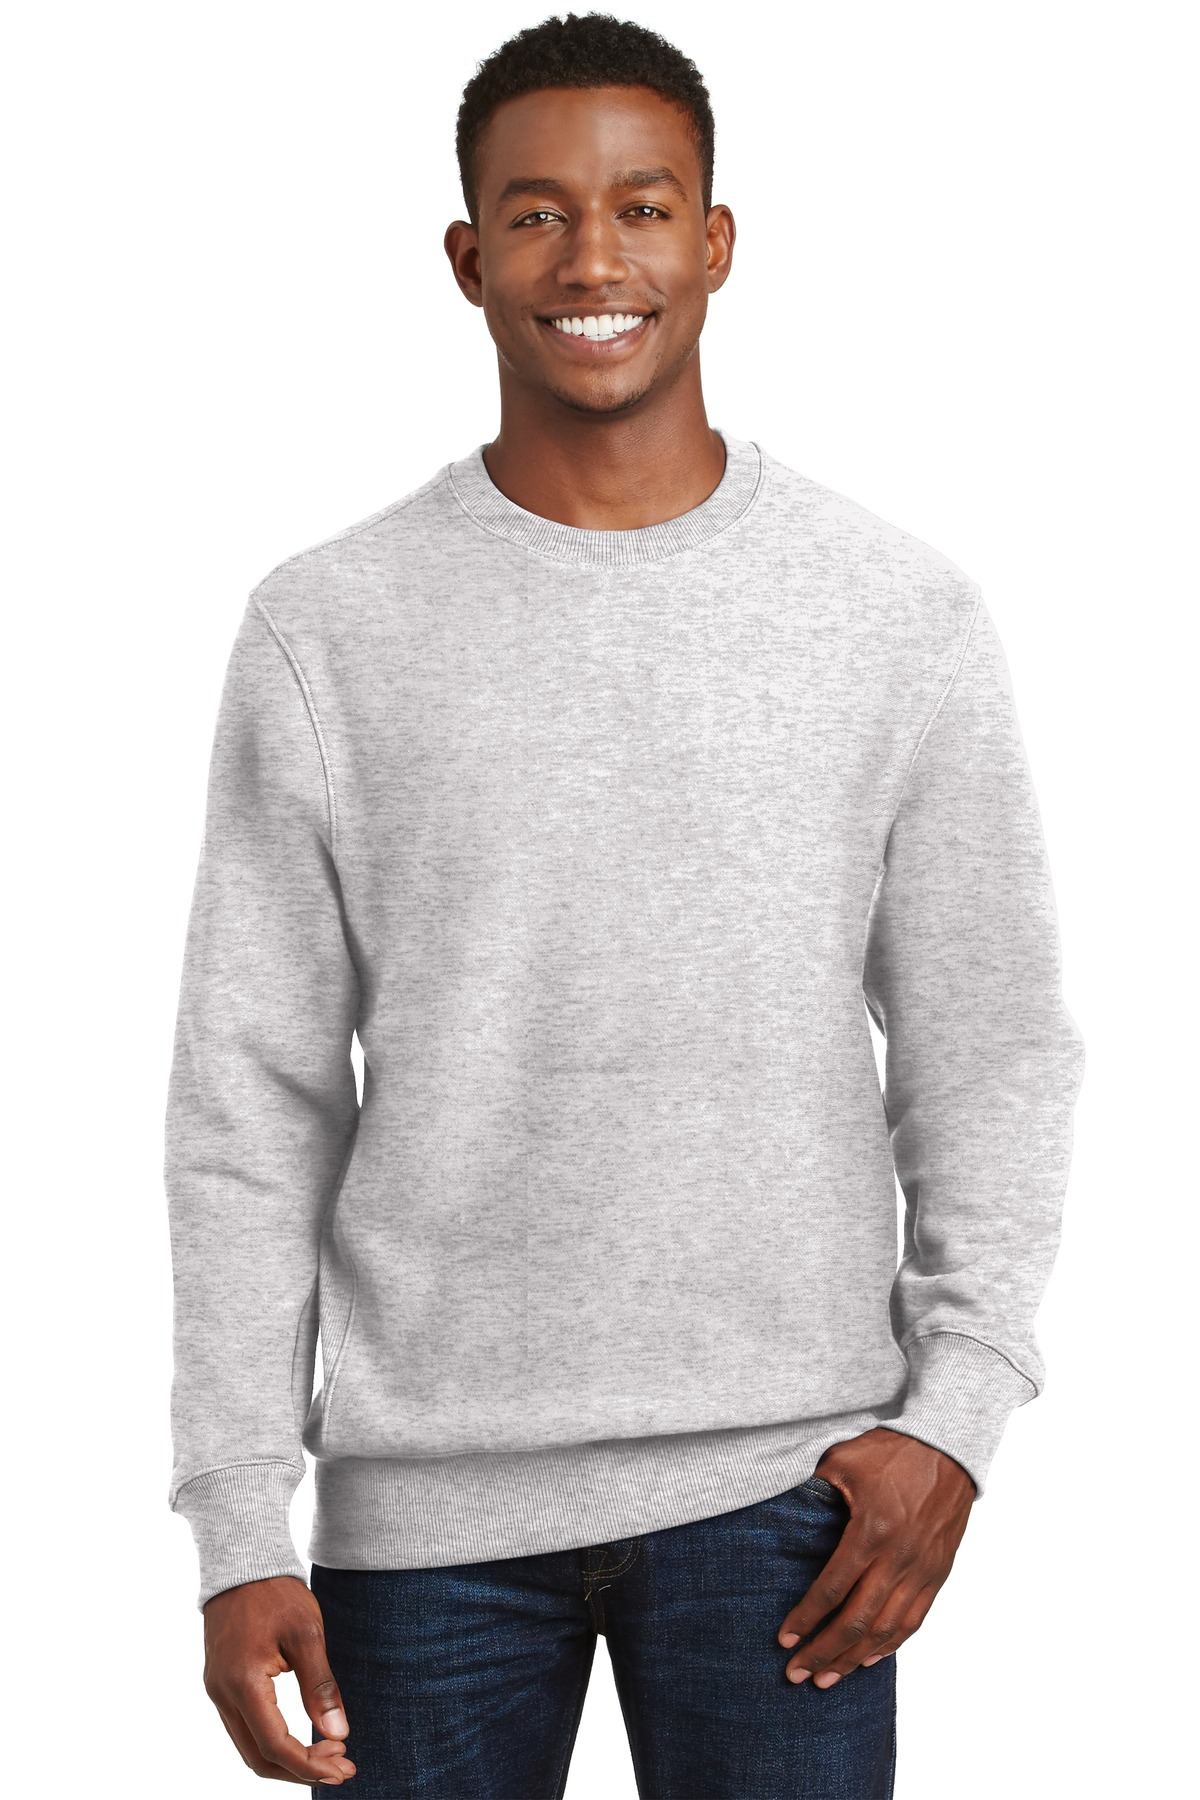 Sport-Tek ®  Super Heavyweight Crewneck Sweatshirt.  F280 - Athletic Heather